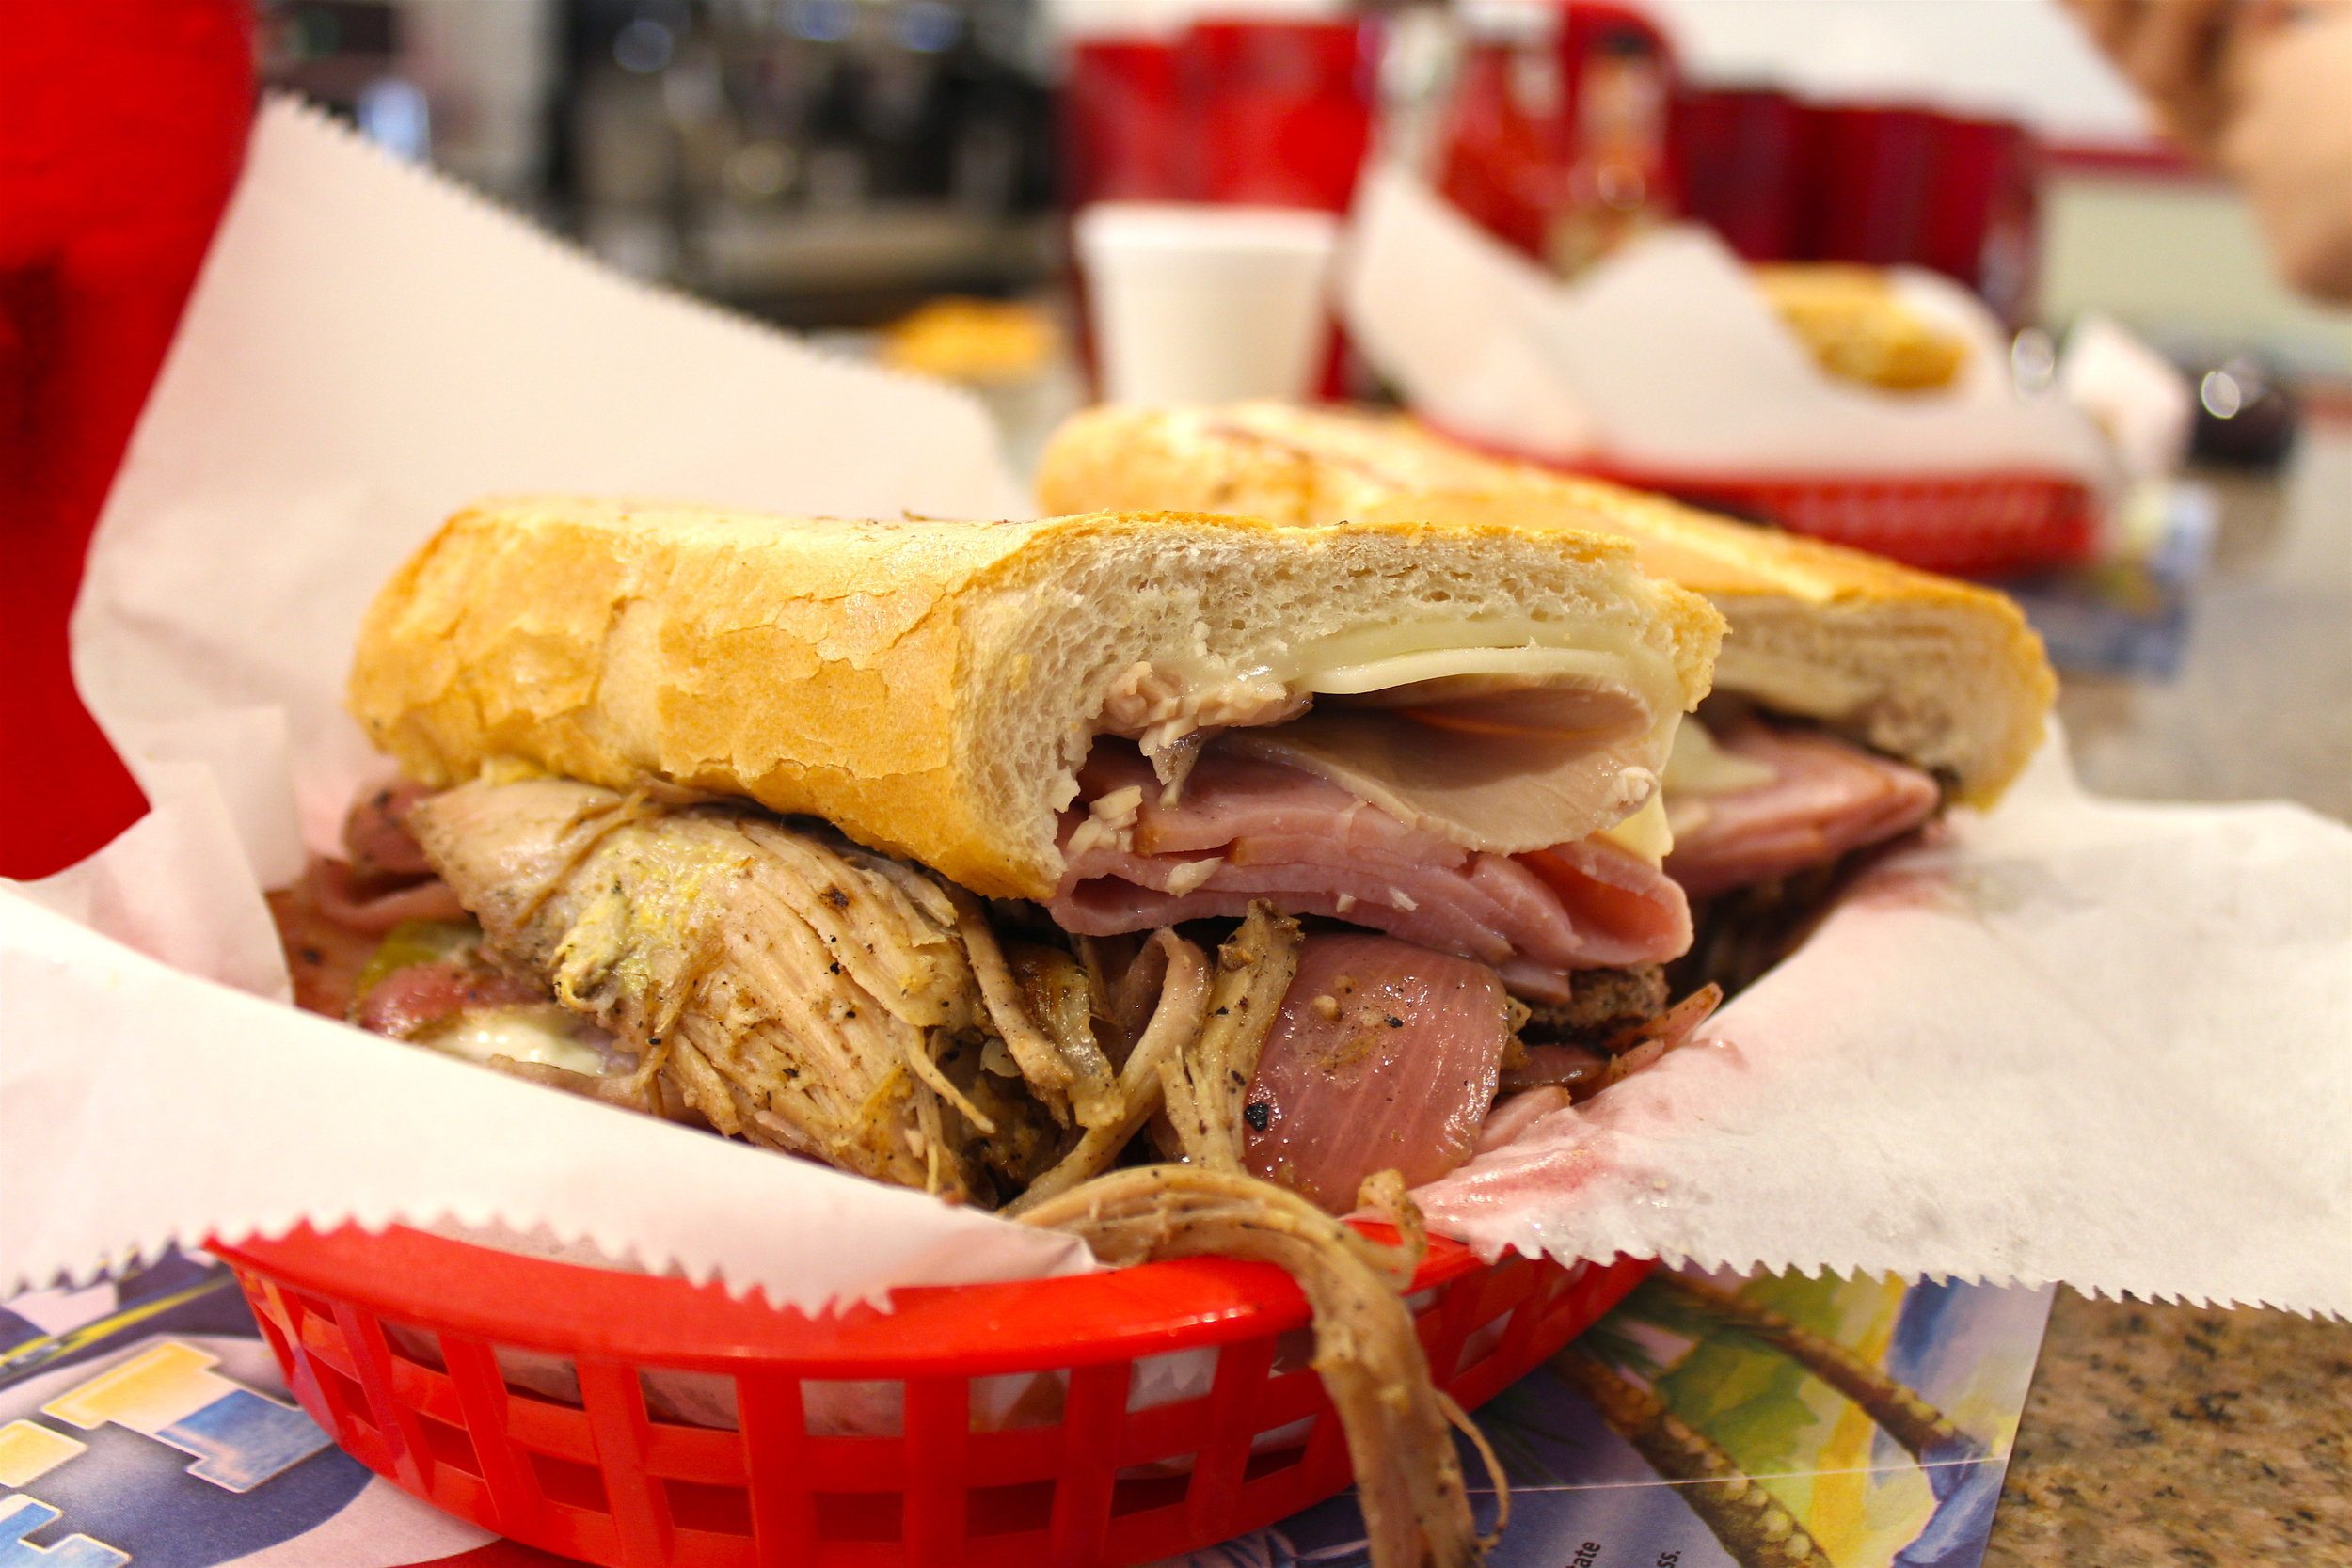 Double Cuban Sandwich (Ham, Cheese, Pork, Mustard, Roast Pulled Pork, Spanish Mojito Sauce with Onions) at Enriqueta's